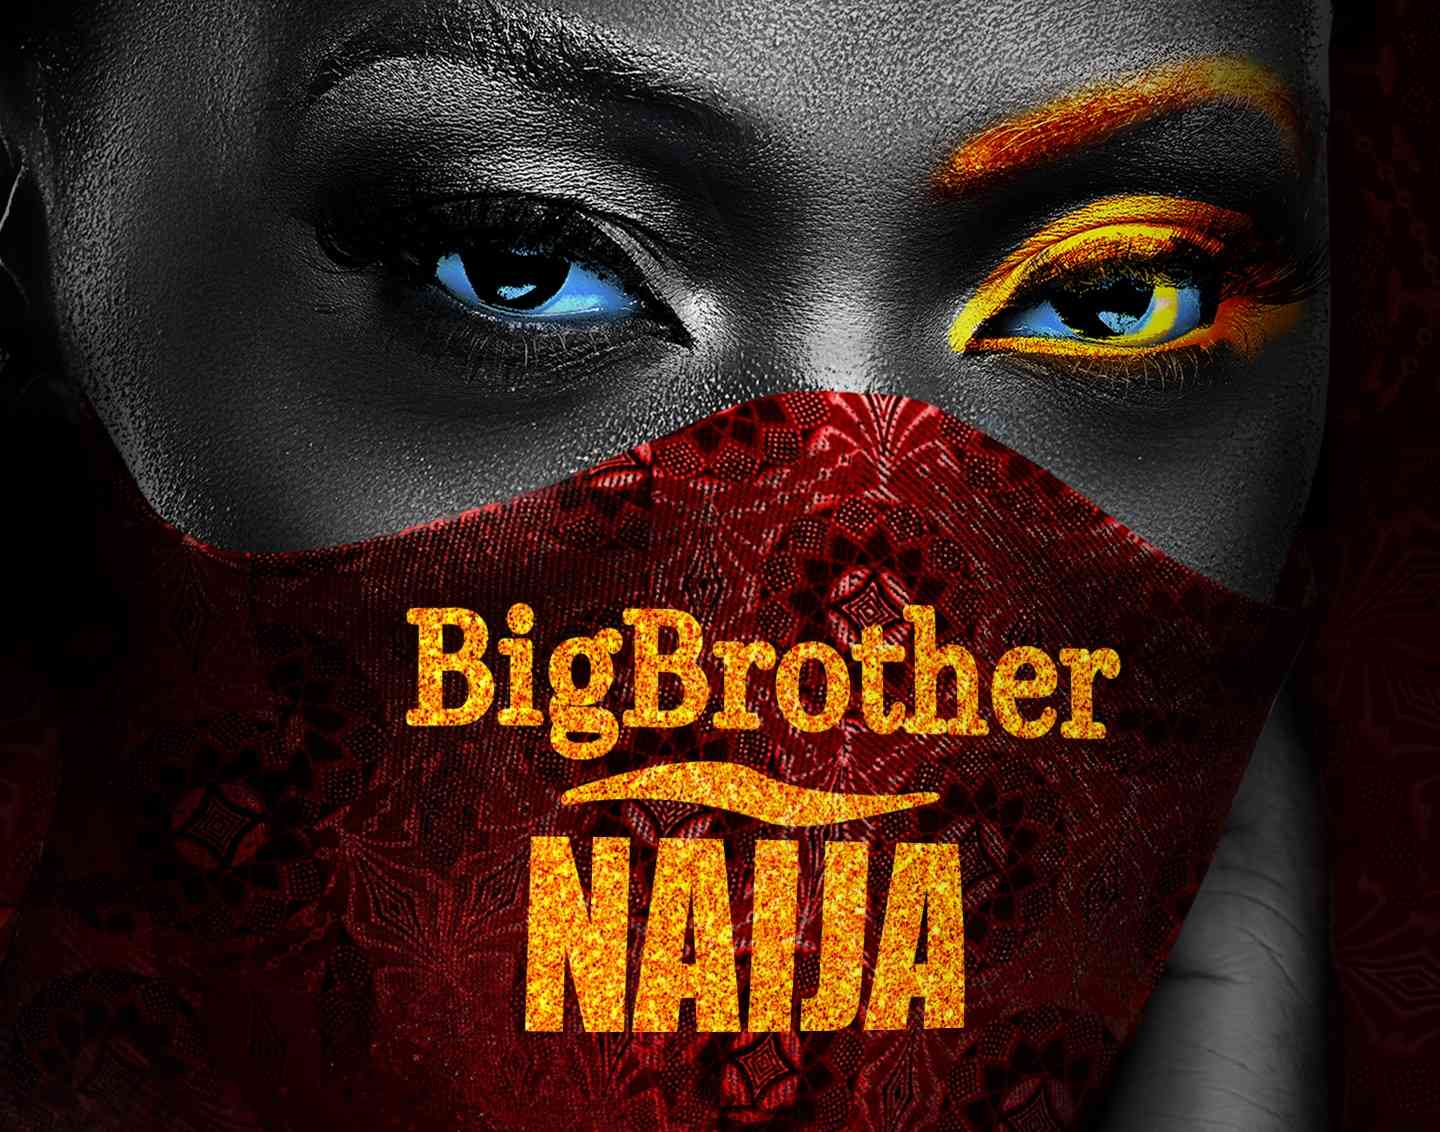 Big Brother Naija Season 5; Pandemic Compliant & Good to Go